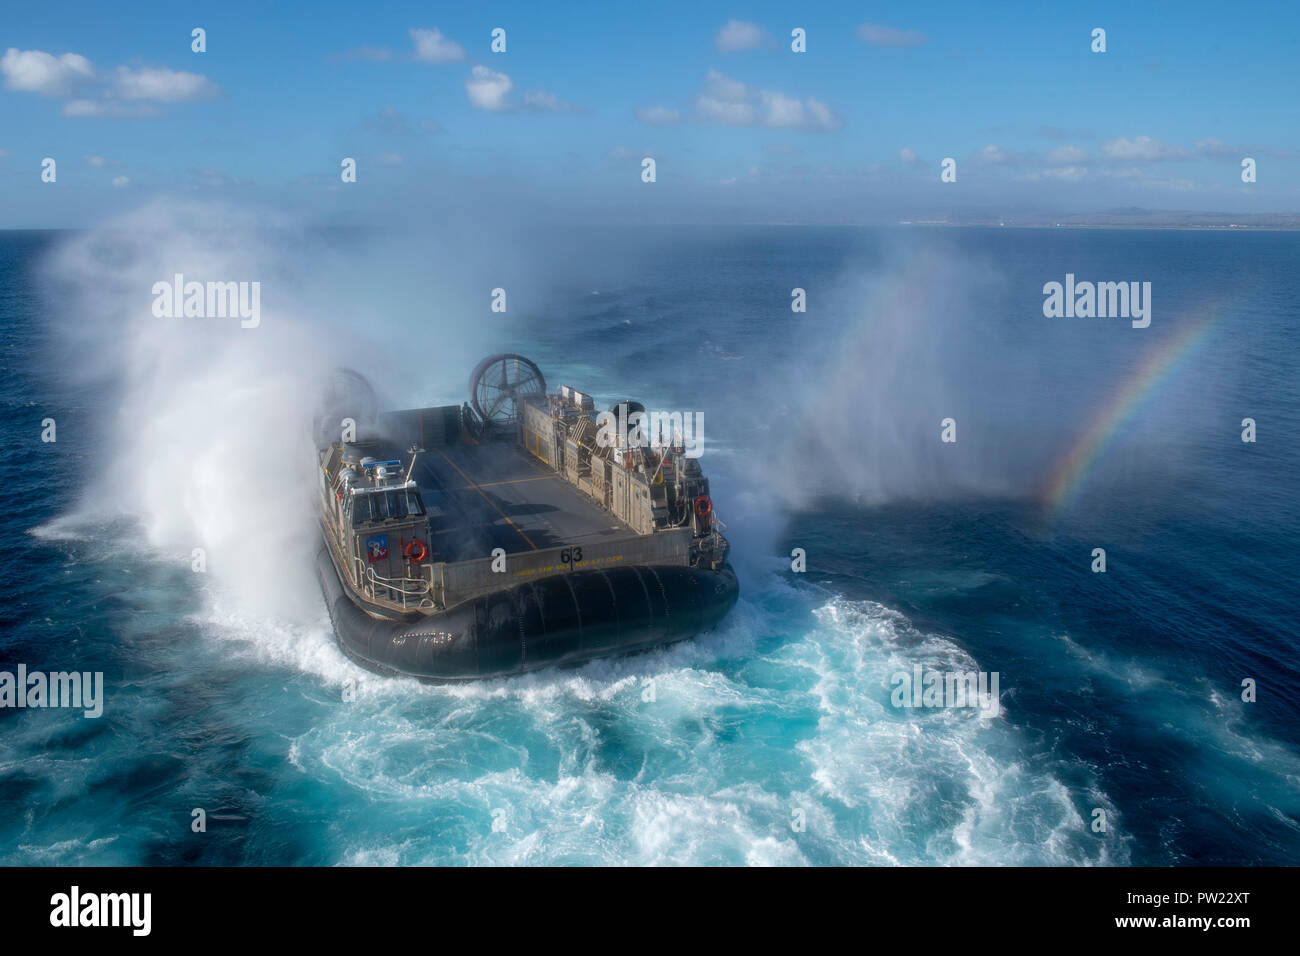 181010-N-DC385-1117 PACIFIC OCEAN (Oct. 10, 2018) Landing craft air cushion (LCAC) 63, assigned to Assault Craft Unit (ACU) 5, approaches the well deck of the amphibious assault ship USS Bonhomme Richard (LHD 6). Bonhomme Richard is operating in the U.S. 3rd Fleet area of operations. (U.S. Navy photo by Mass Communication Specialist 3rd Class Cosmo Walrath) - Stock Image